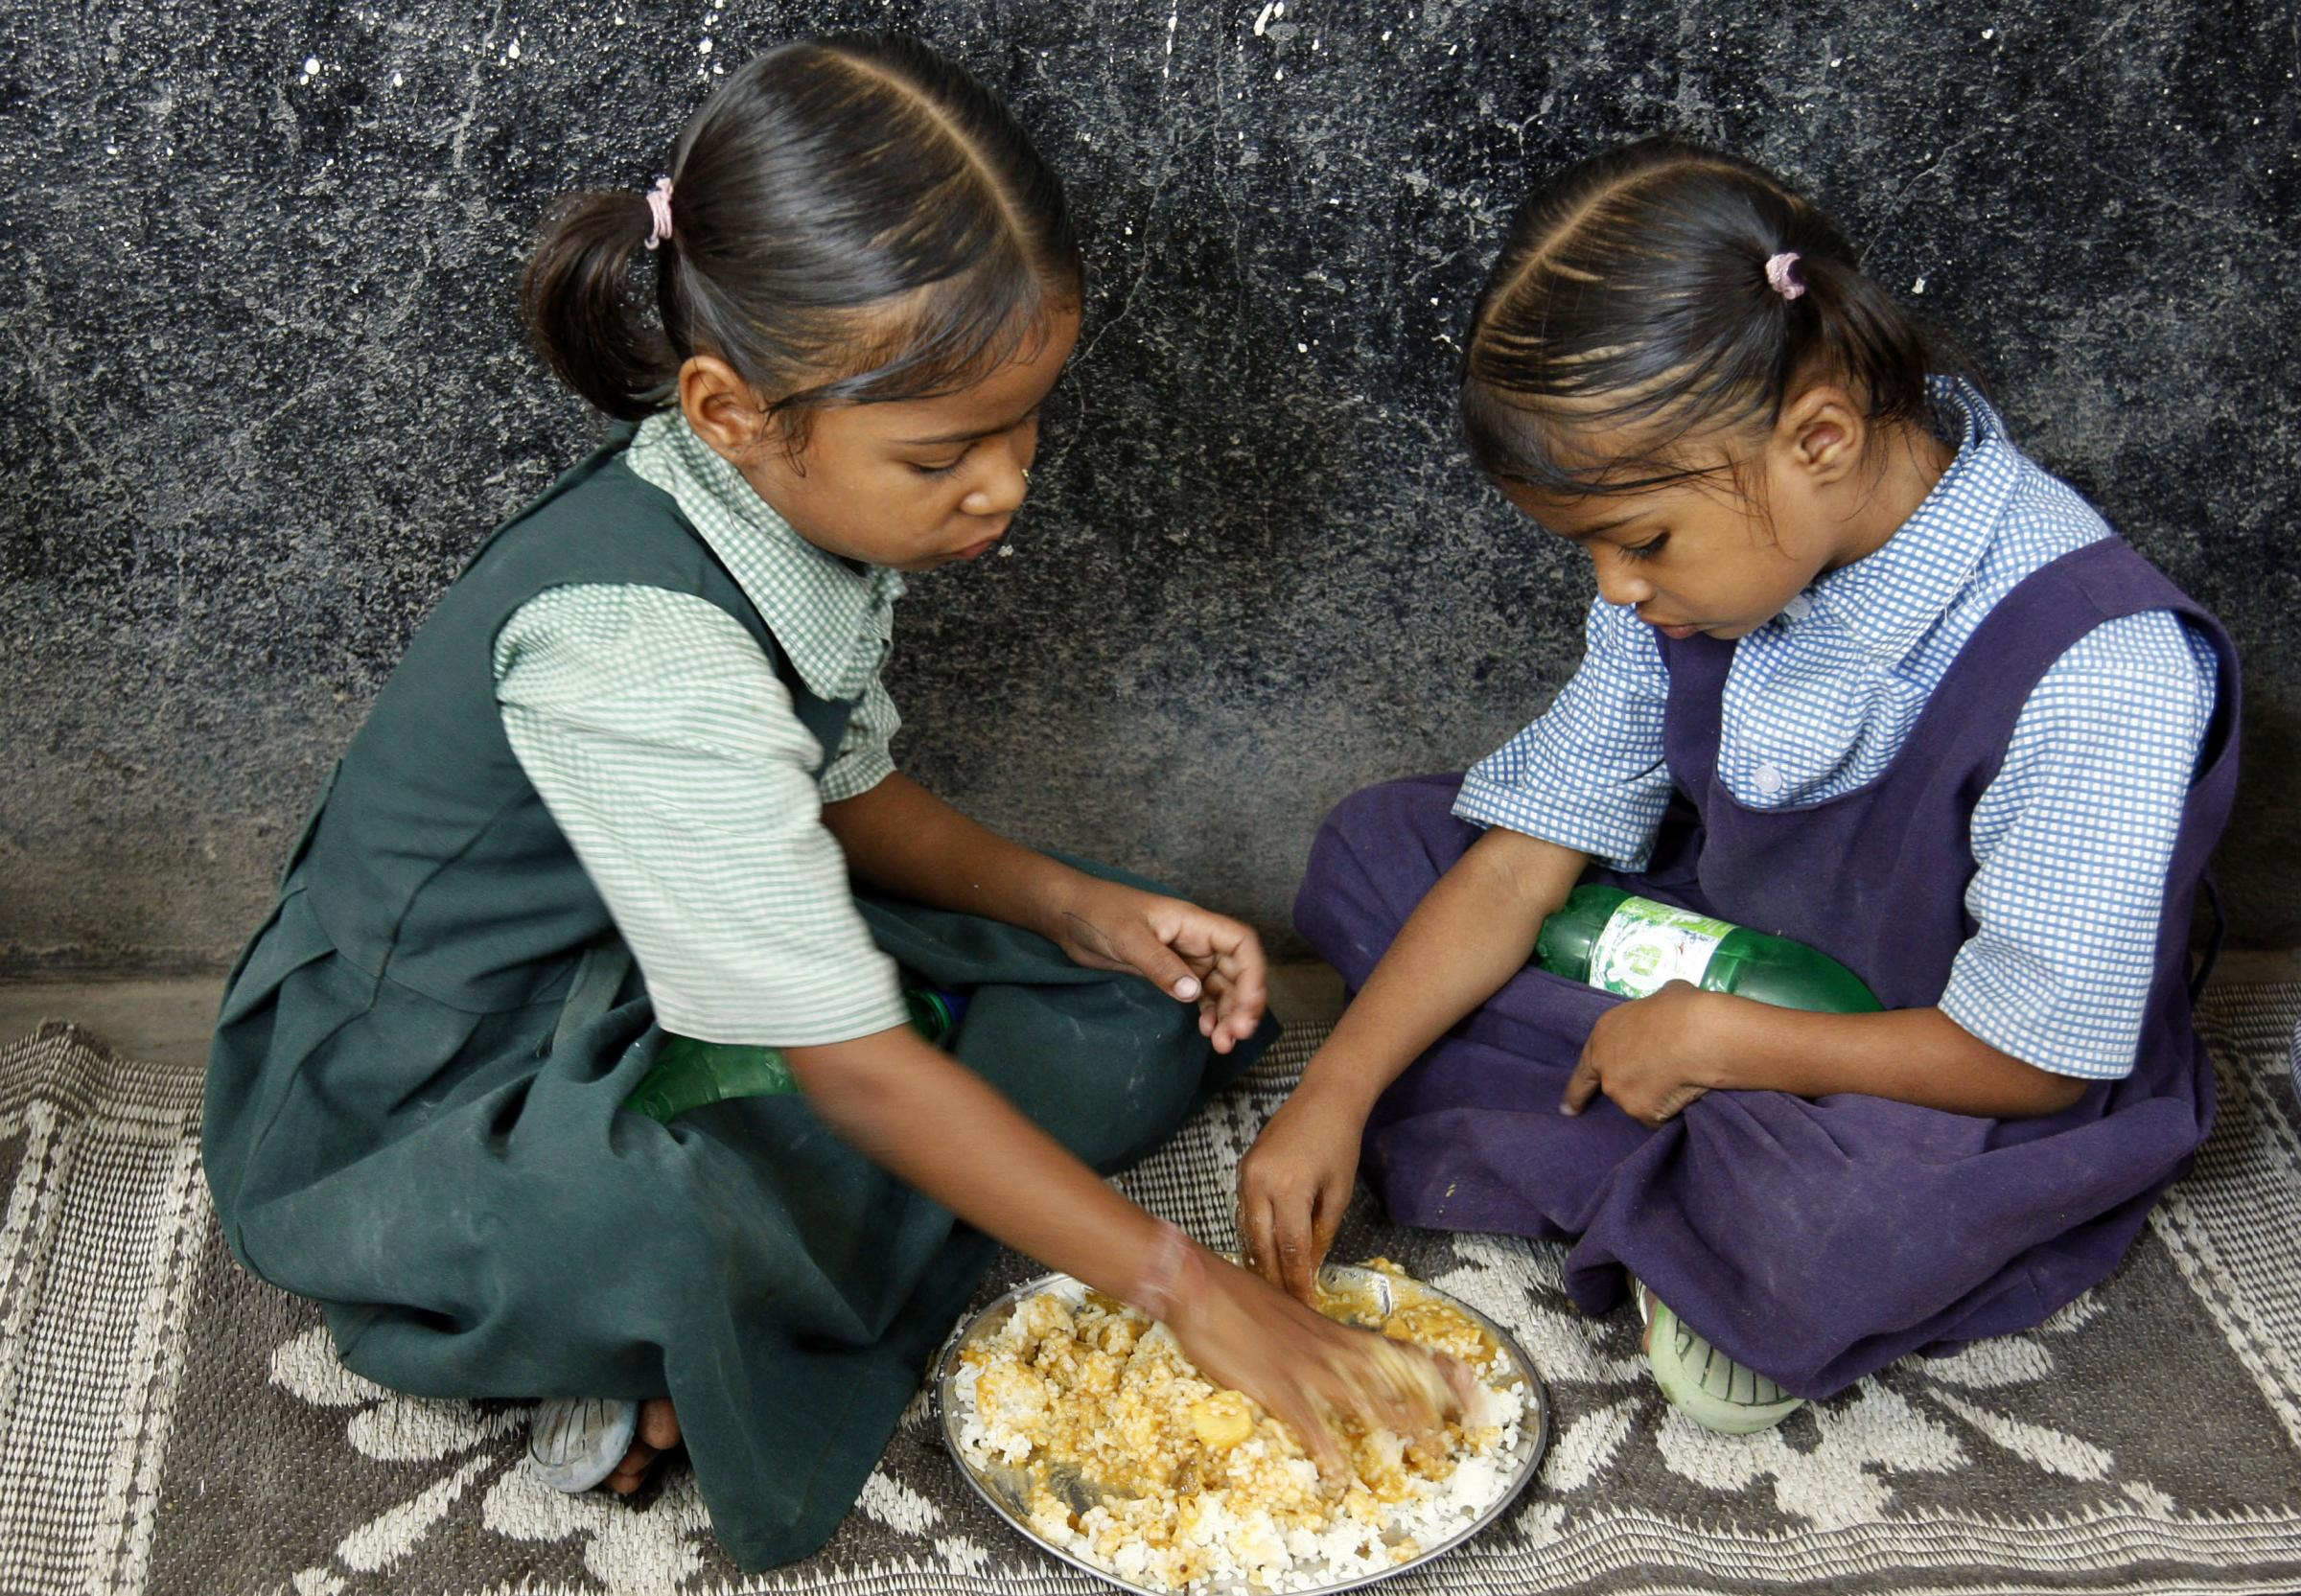 essay on middle class in india She felt disempowered by the 'selfish' and 'worthless' ways of india's [ images ] burgeoning urban middle class it were the rural and.